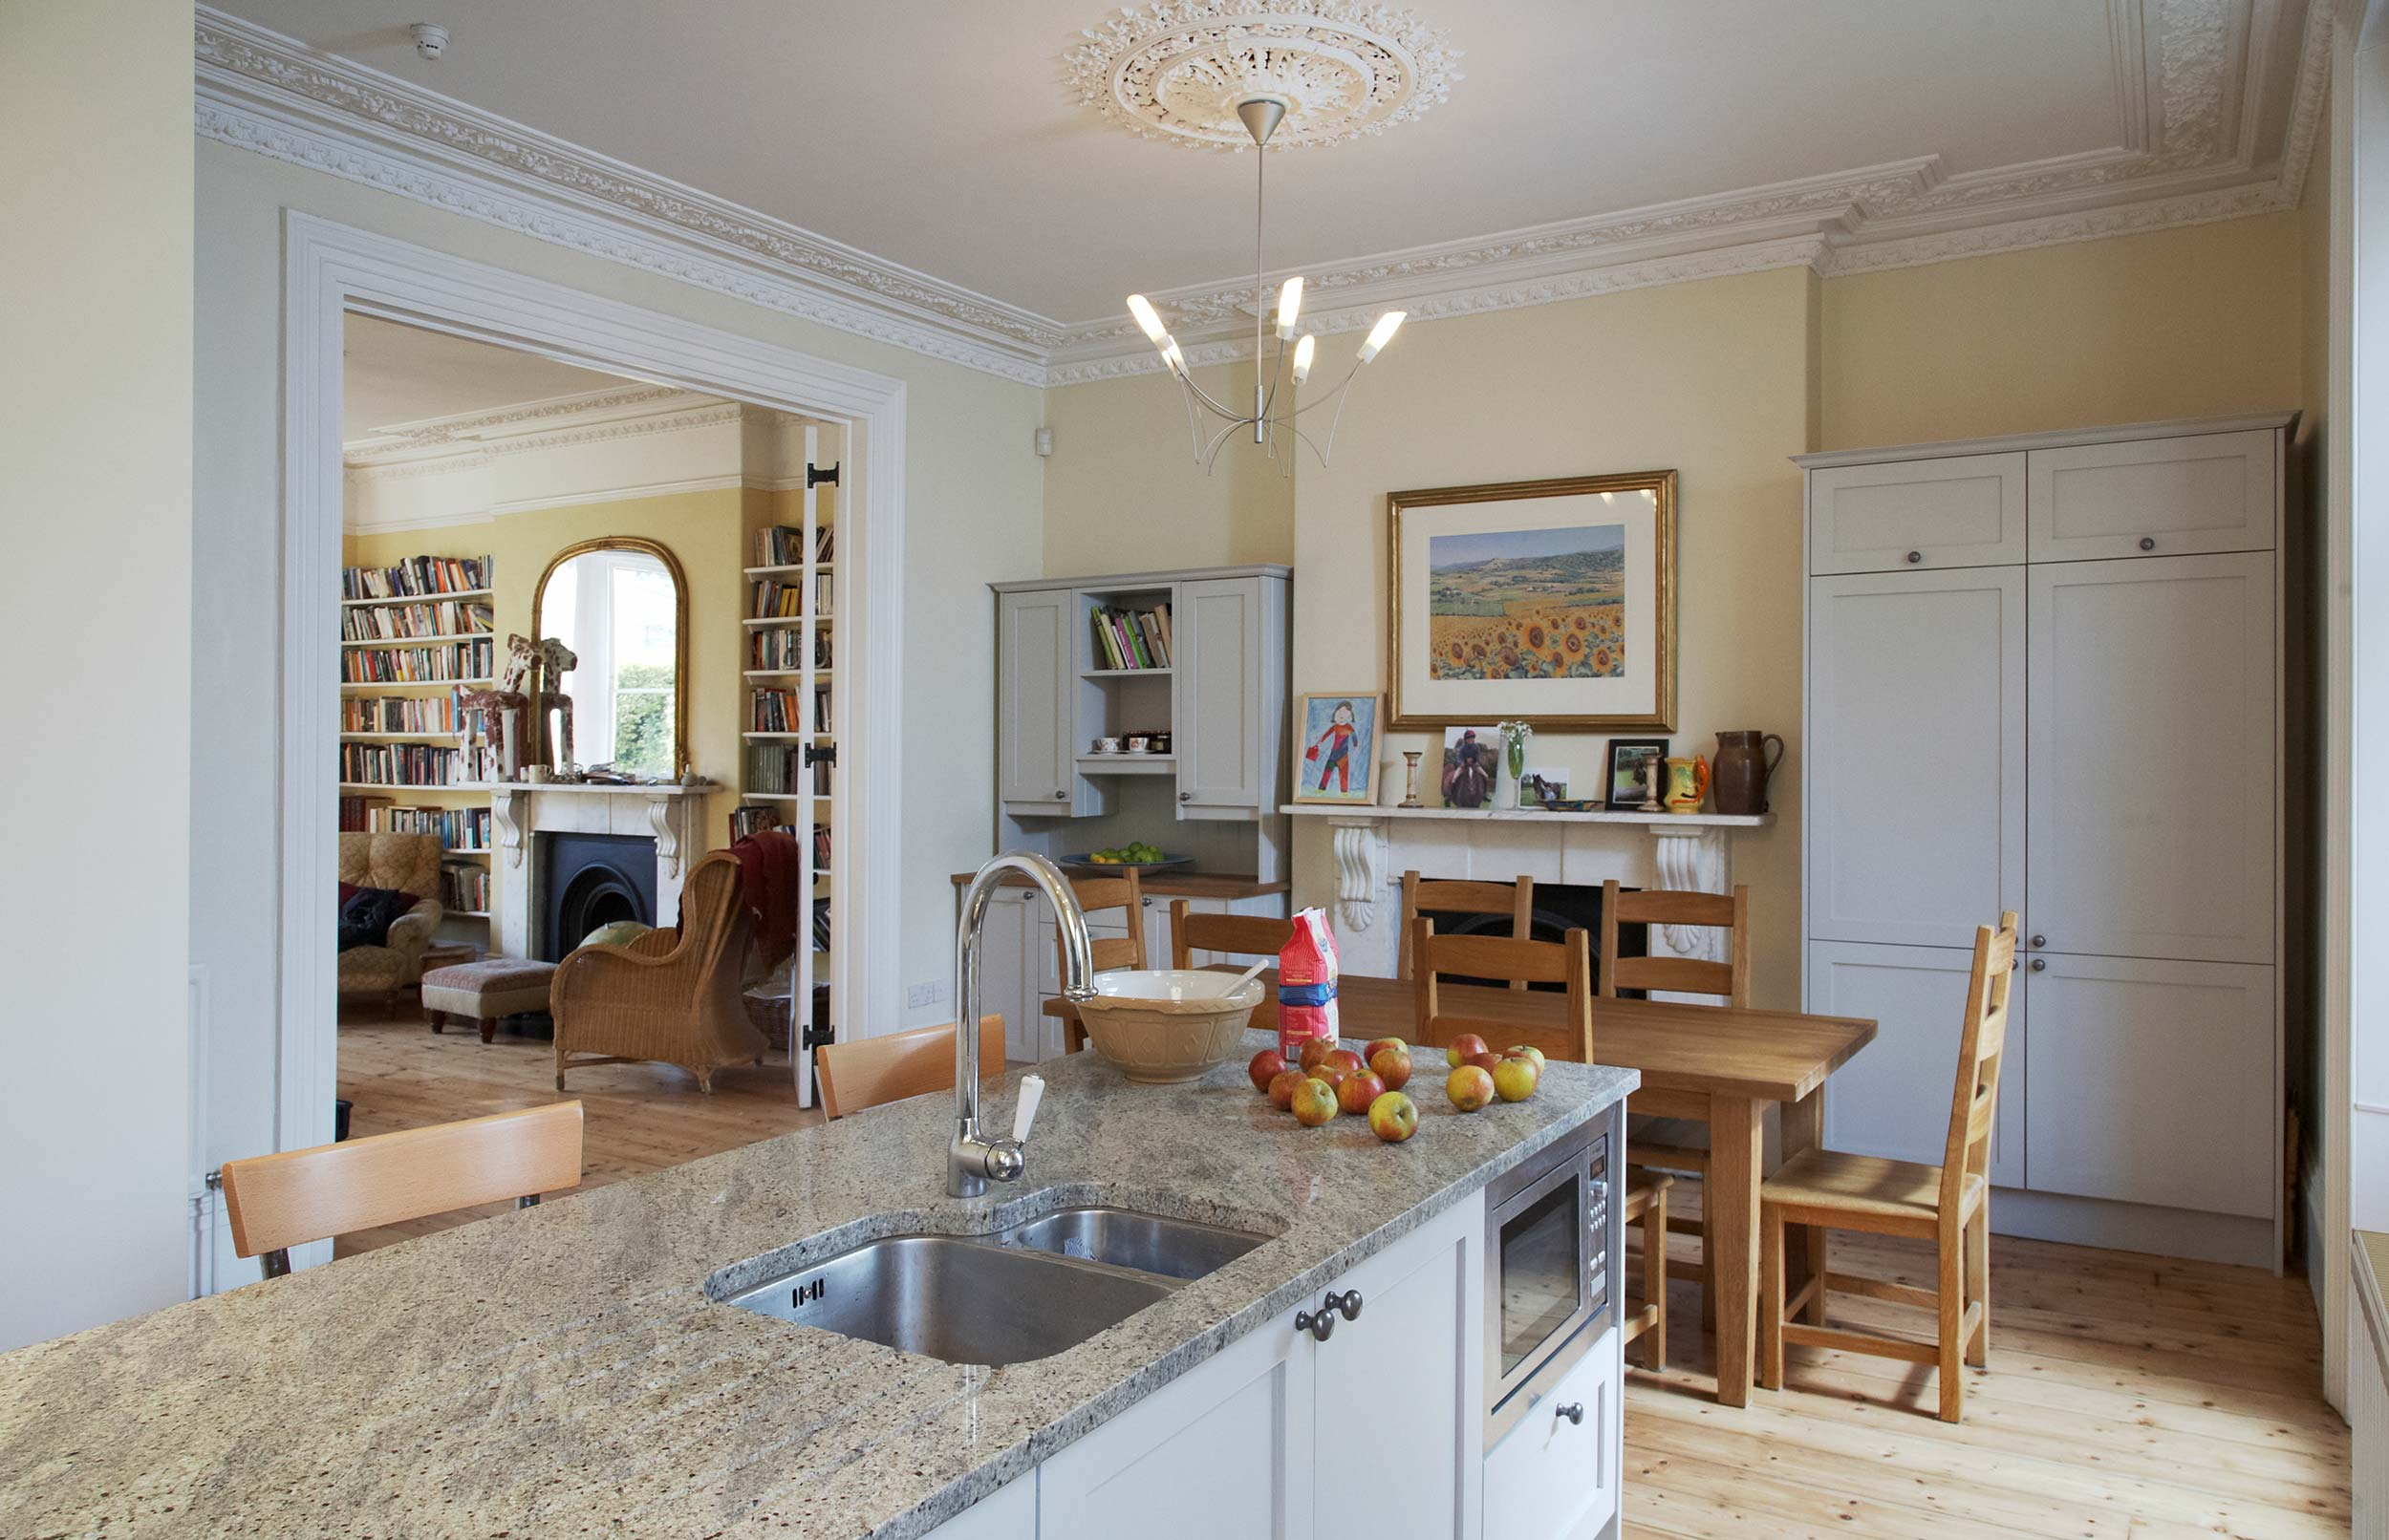 Classic French Bespoke Kitchen Island view